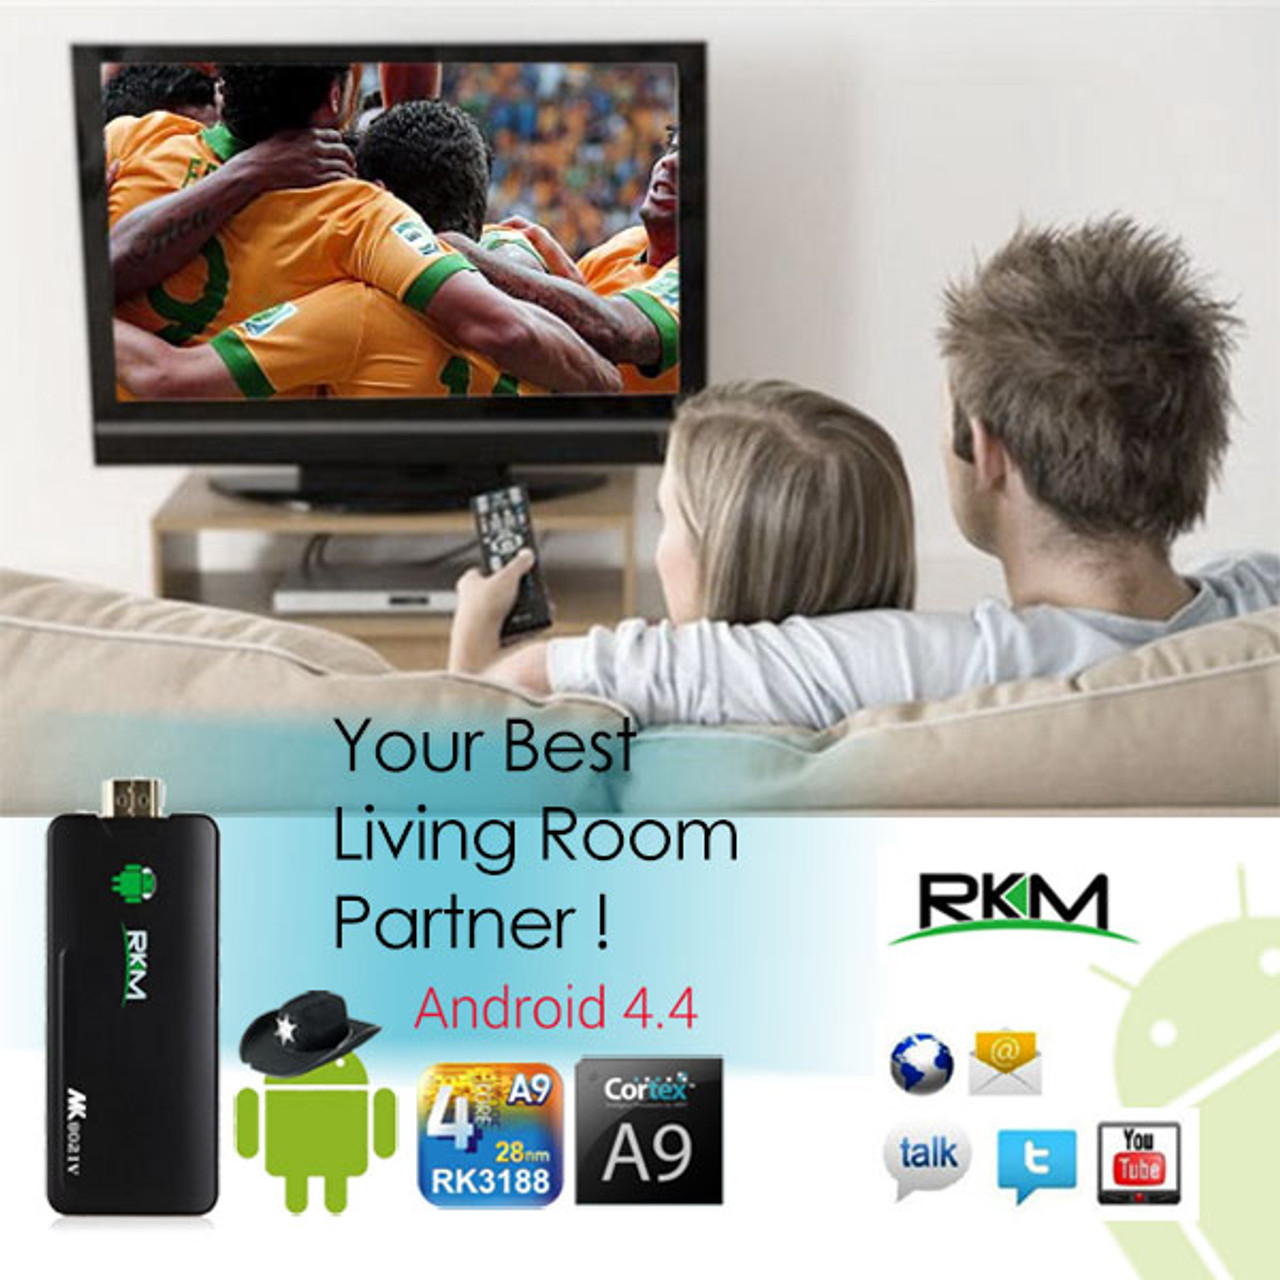 Product image for RKM Quad Core Android PC MK802 IV 8GB   CX Computer Superstore